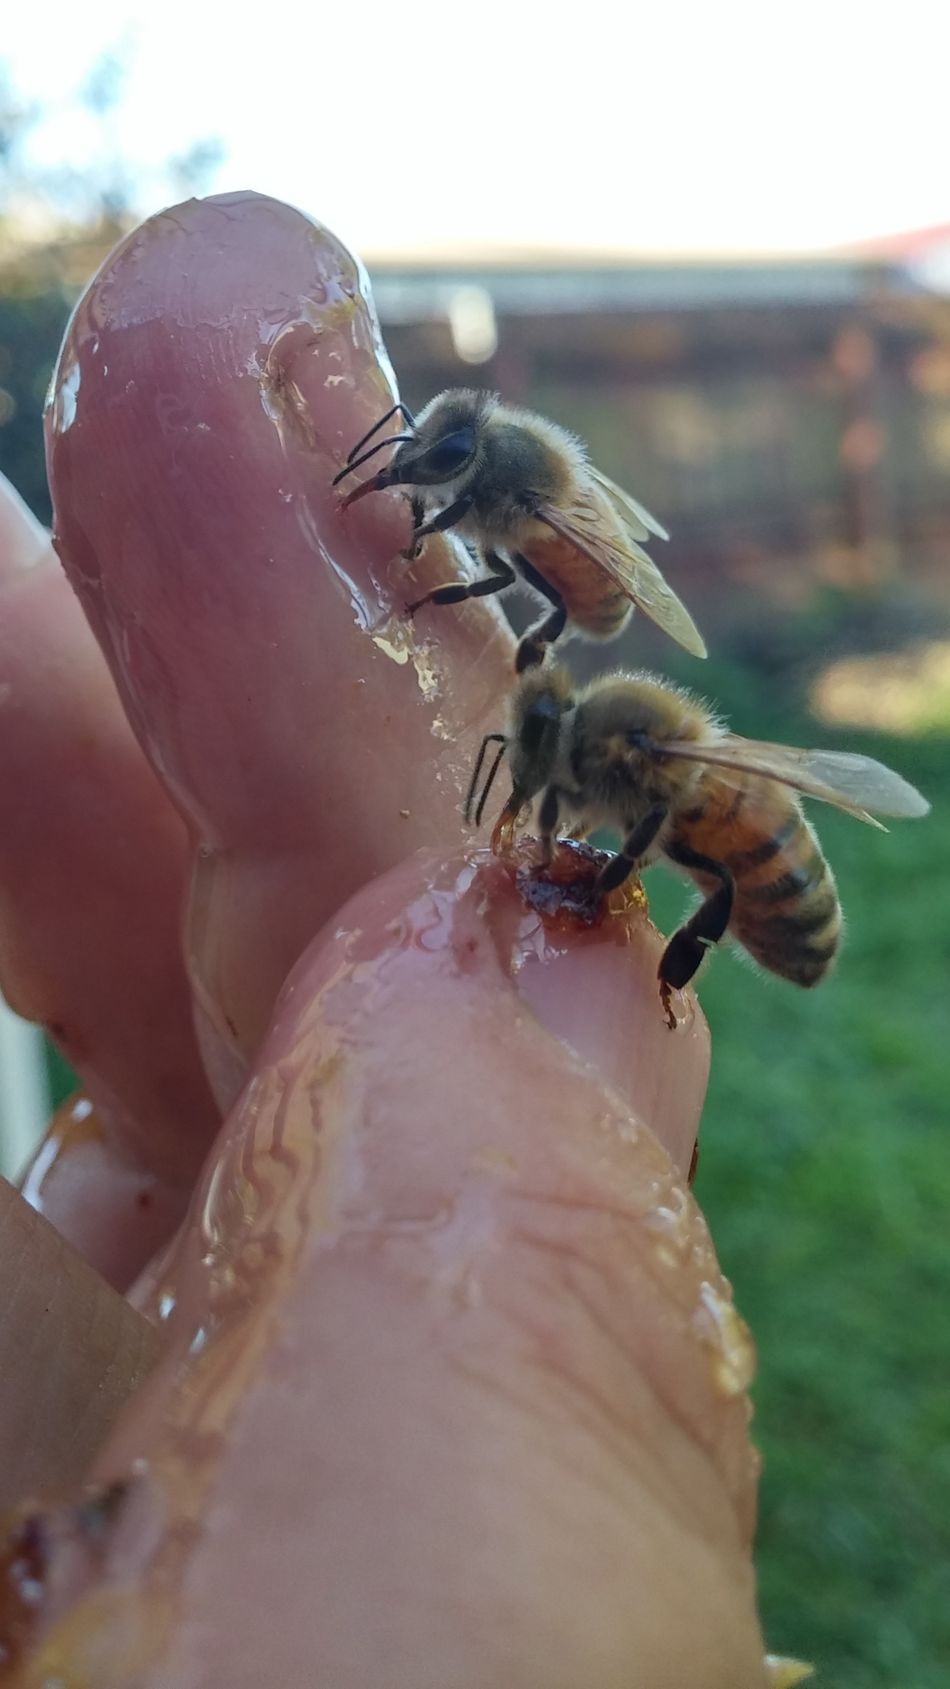 And i see you too Insect Close-up Day Nature Bee Outdoors Summer NZ Style I See You Women Who Inspire You Hanging Hallo Yves Bees🐝 Perching Food Feeding  Insect Theme Human Body Part Focus On Foreground